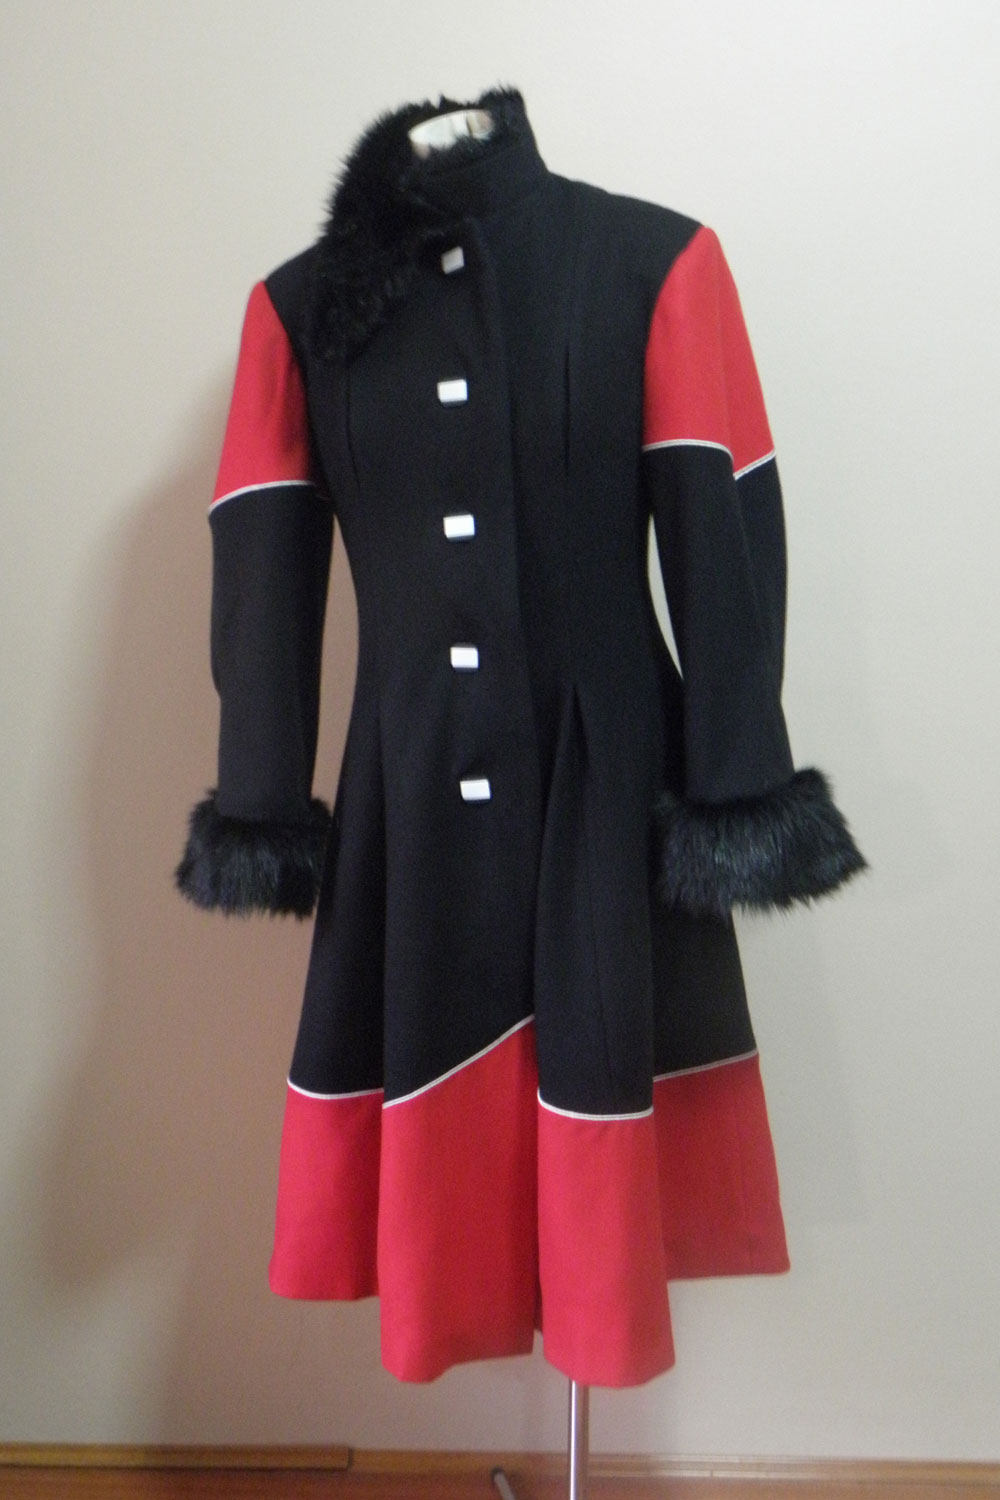 Teena's Black, Red and White Winter Coat is probably still one of my favourite versions! I love the white piping in between the red and black!